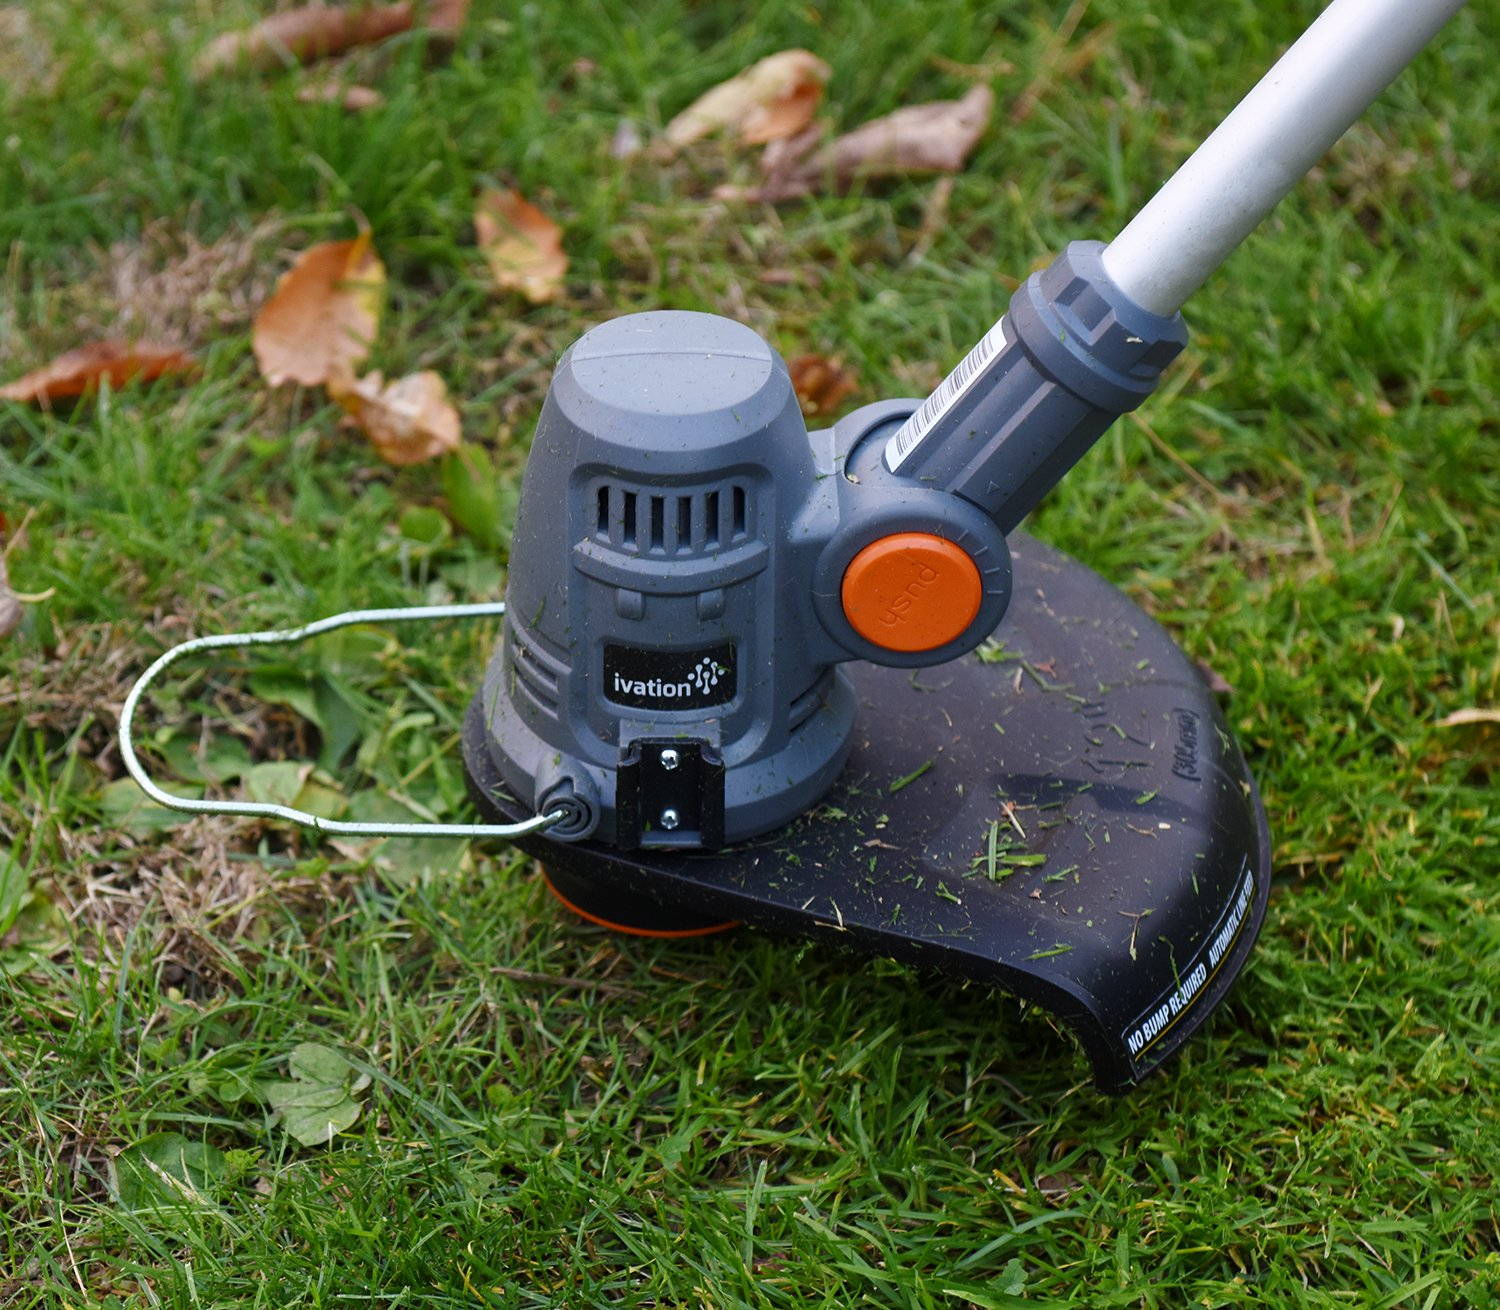 """Ivation 20V 2.0AH Cordless Grass String Trimmer & Edger """" Easy Feed - Includes Extra Battery Pack for Easy Cord-Free Trimming & Lawn Edging IVAGT20V"""